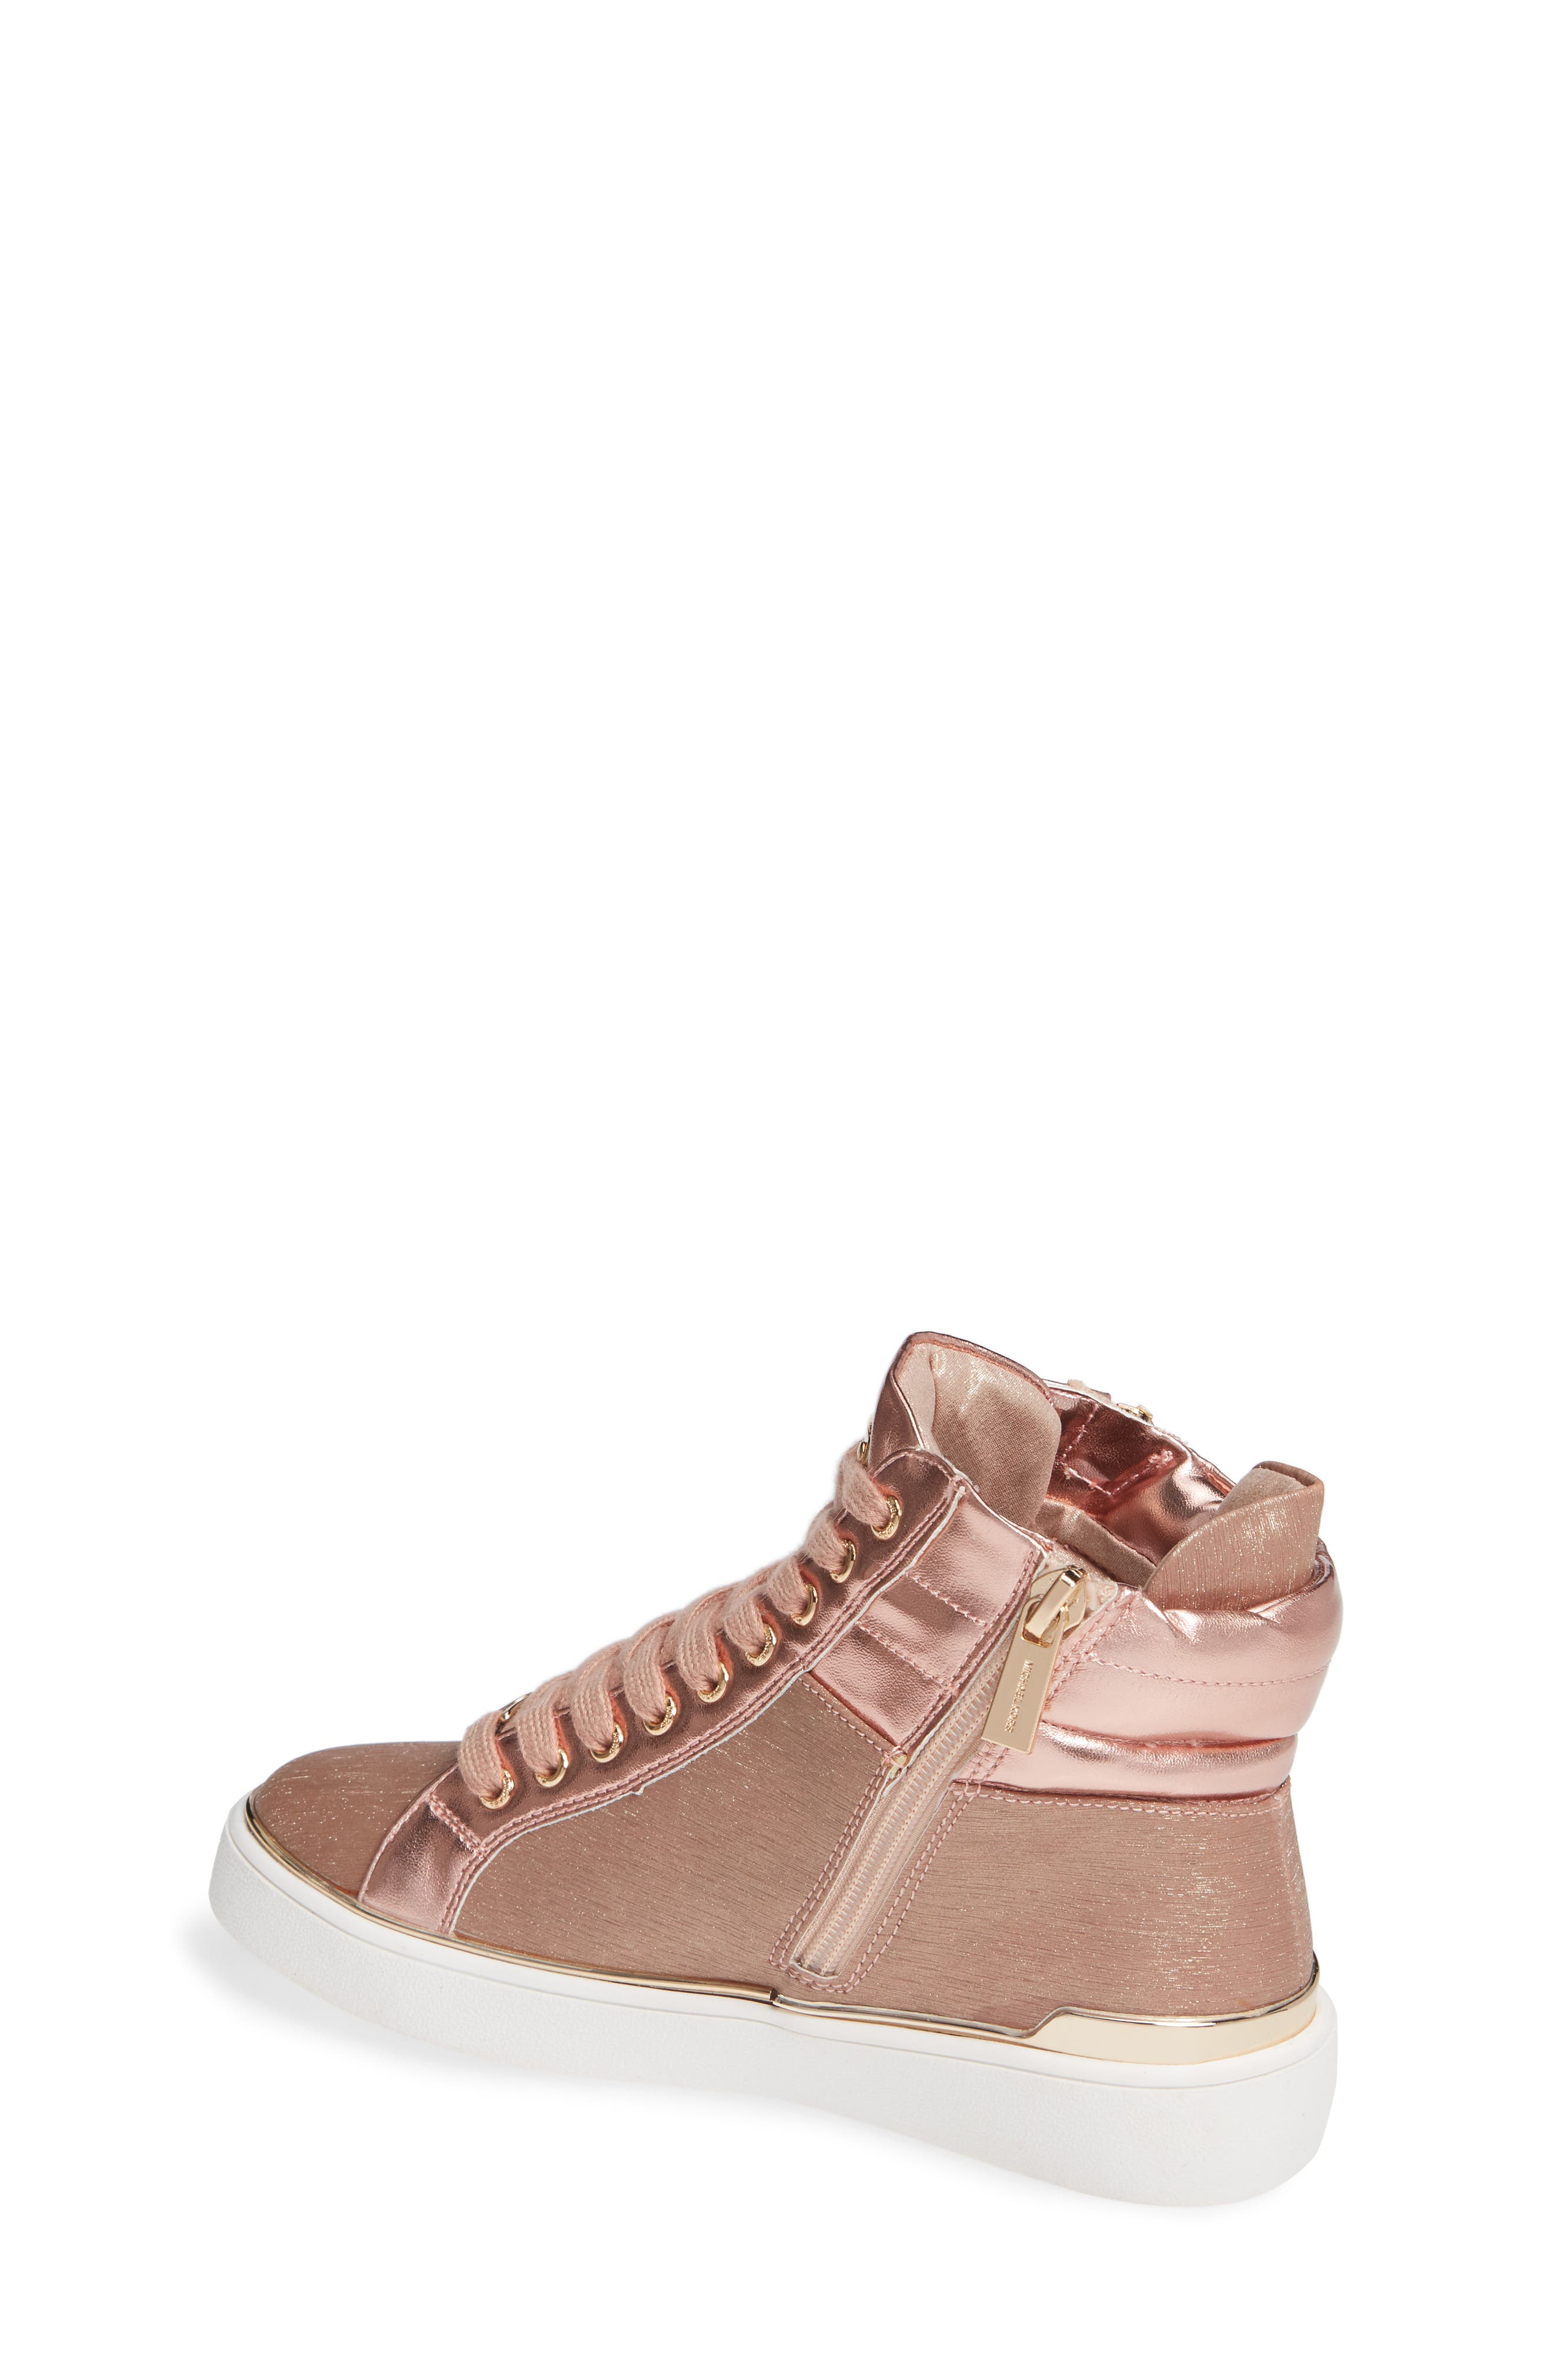 High Top Sneaker,                             Alternate thumbnail 2, color,                             ROSE GOLD